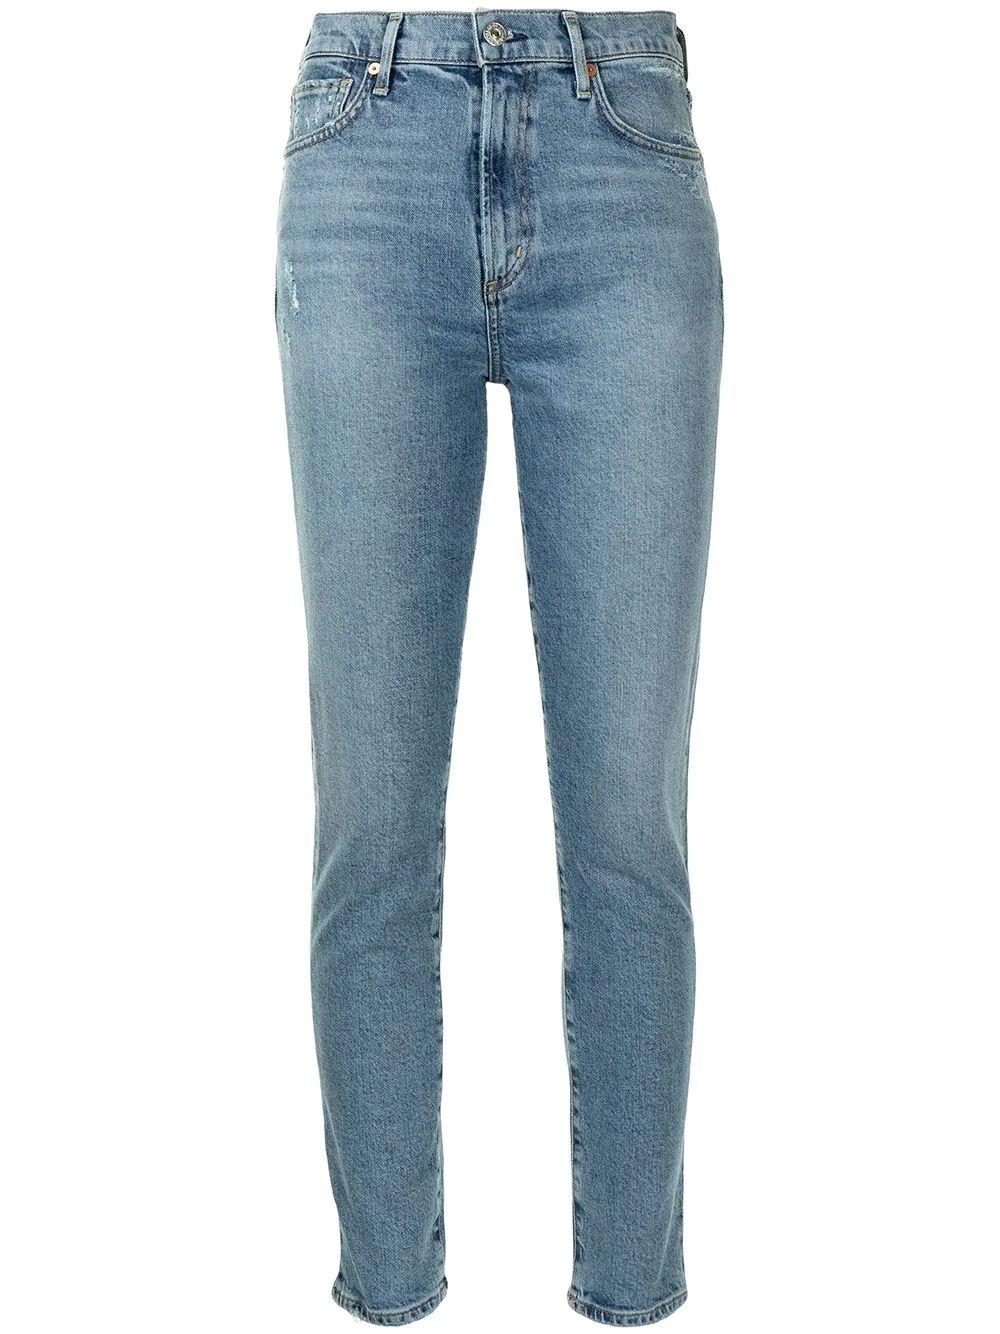 Olivia Slim Straight Leg Jean Item # 1926-1140